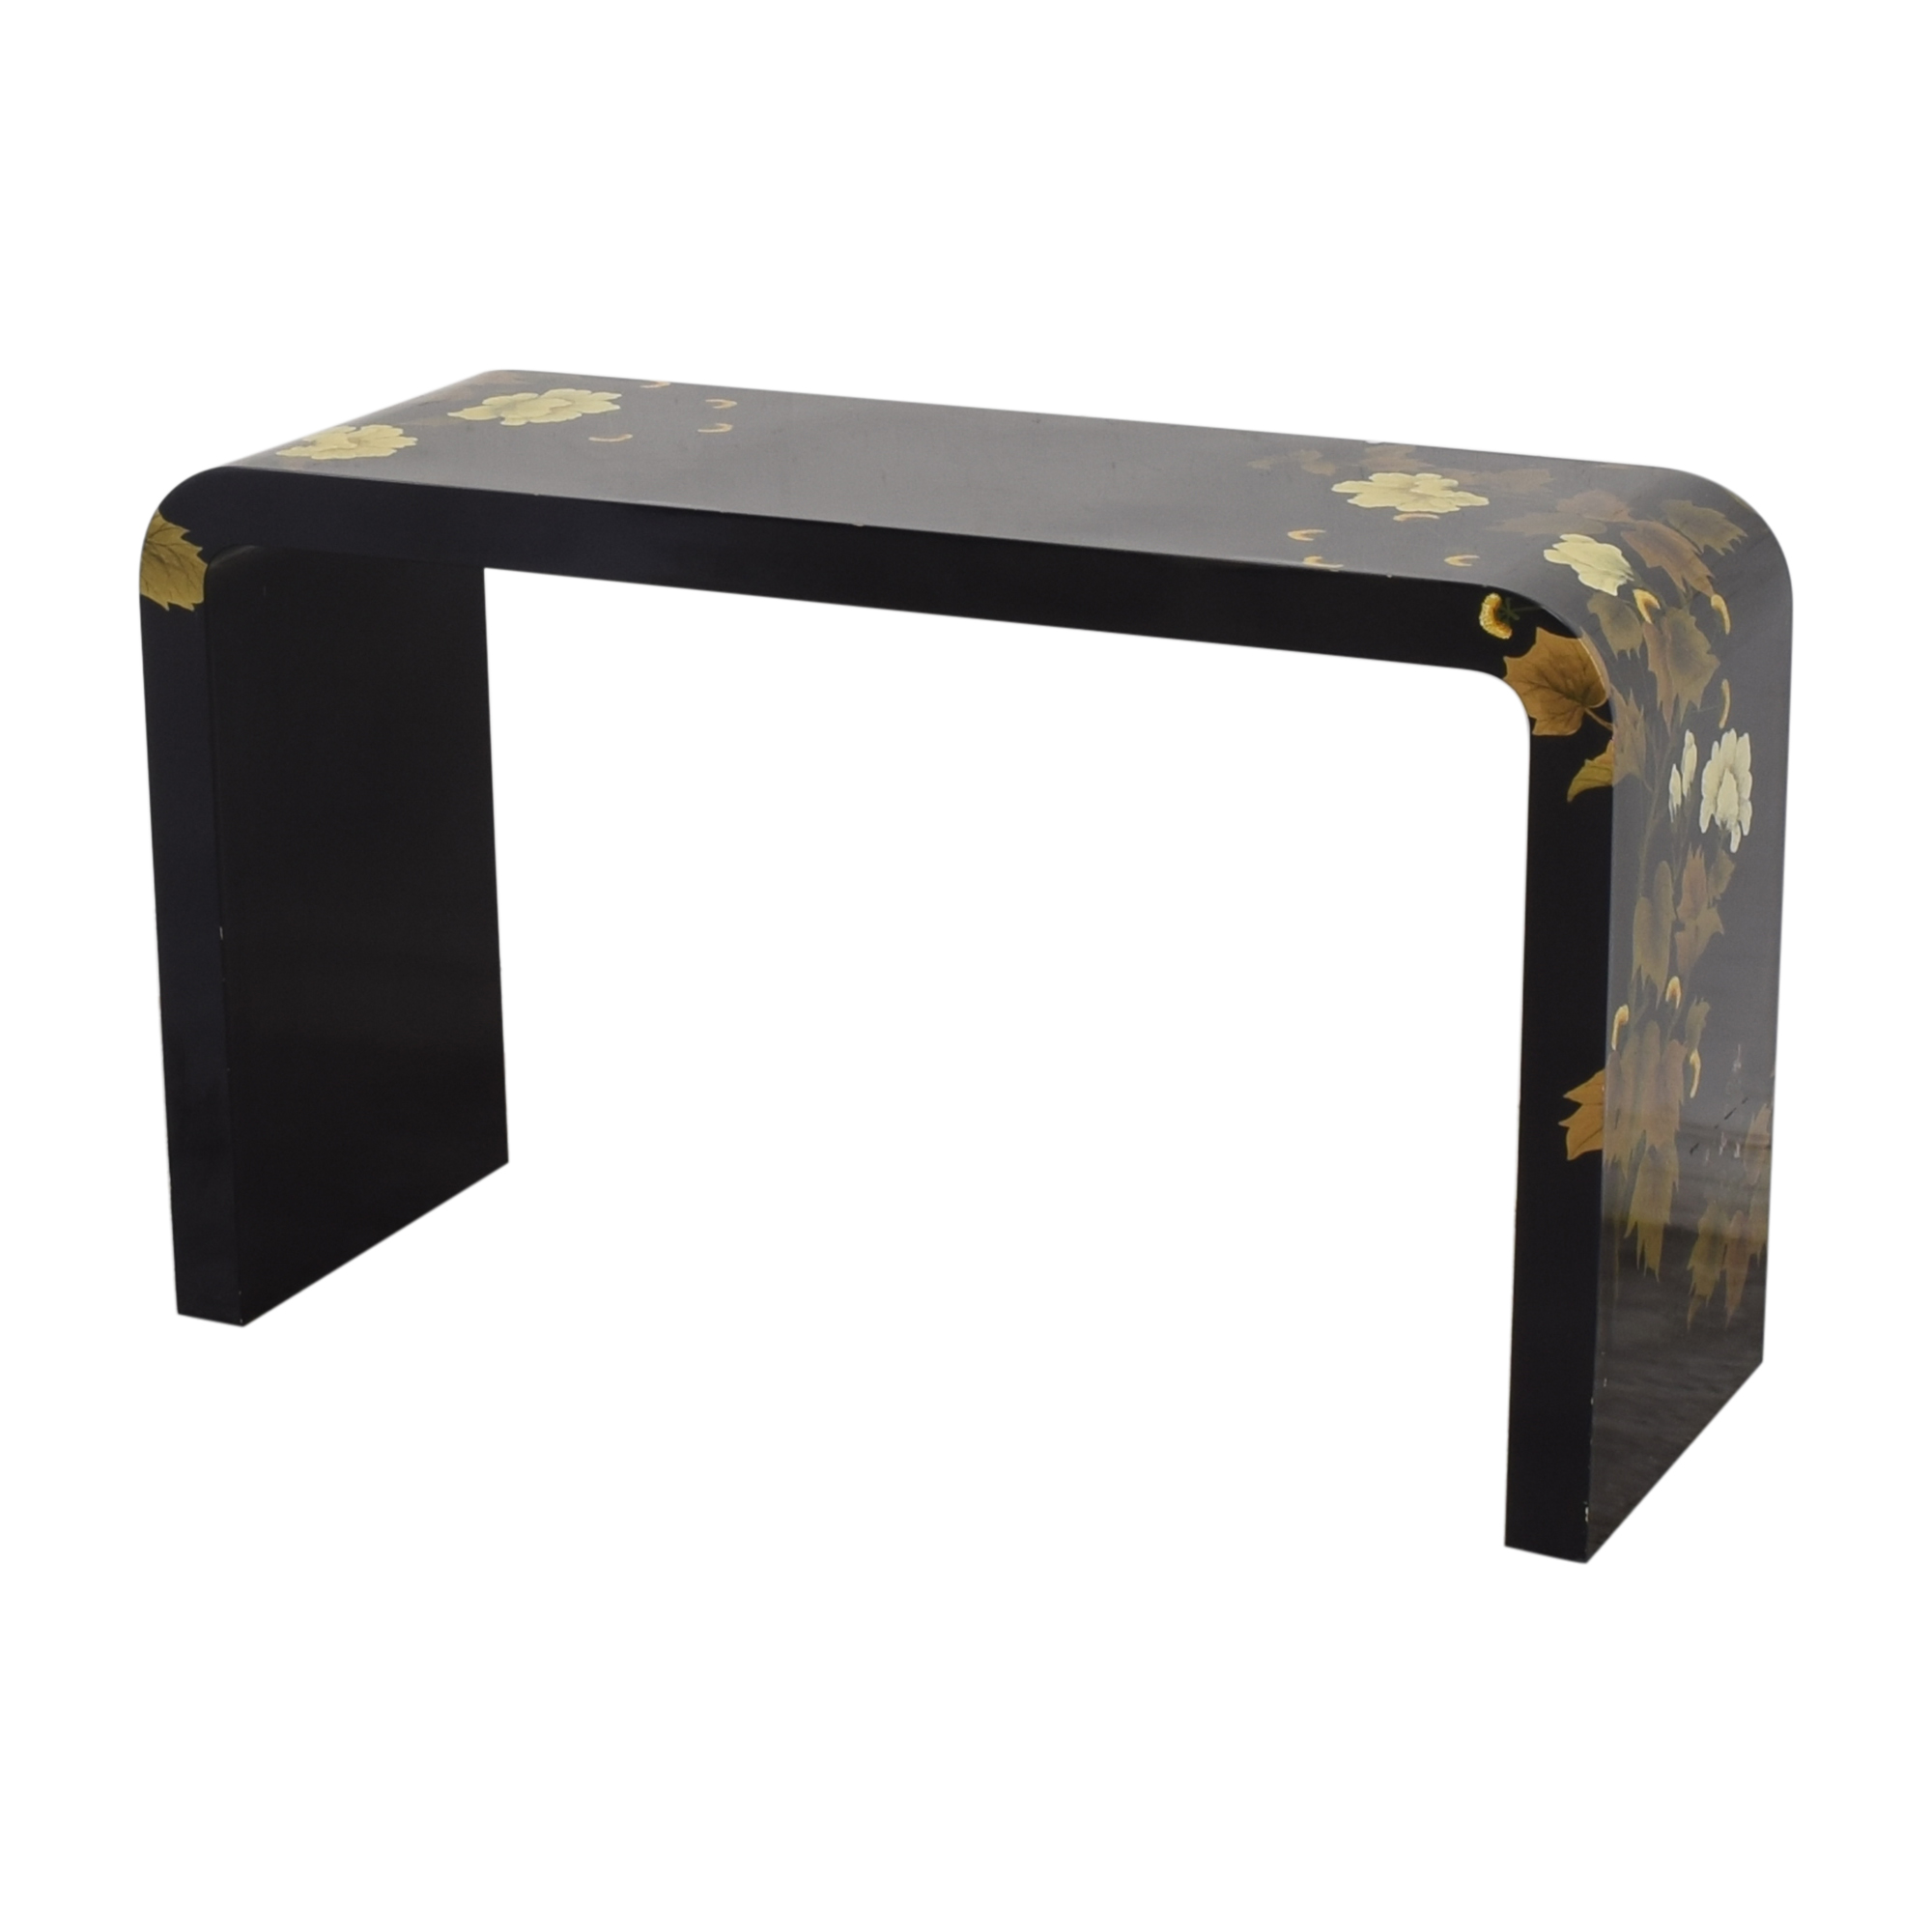 Decorative Floral Waterfall Console Table pa